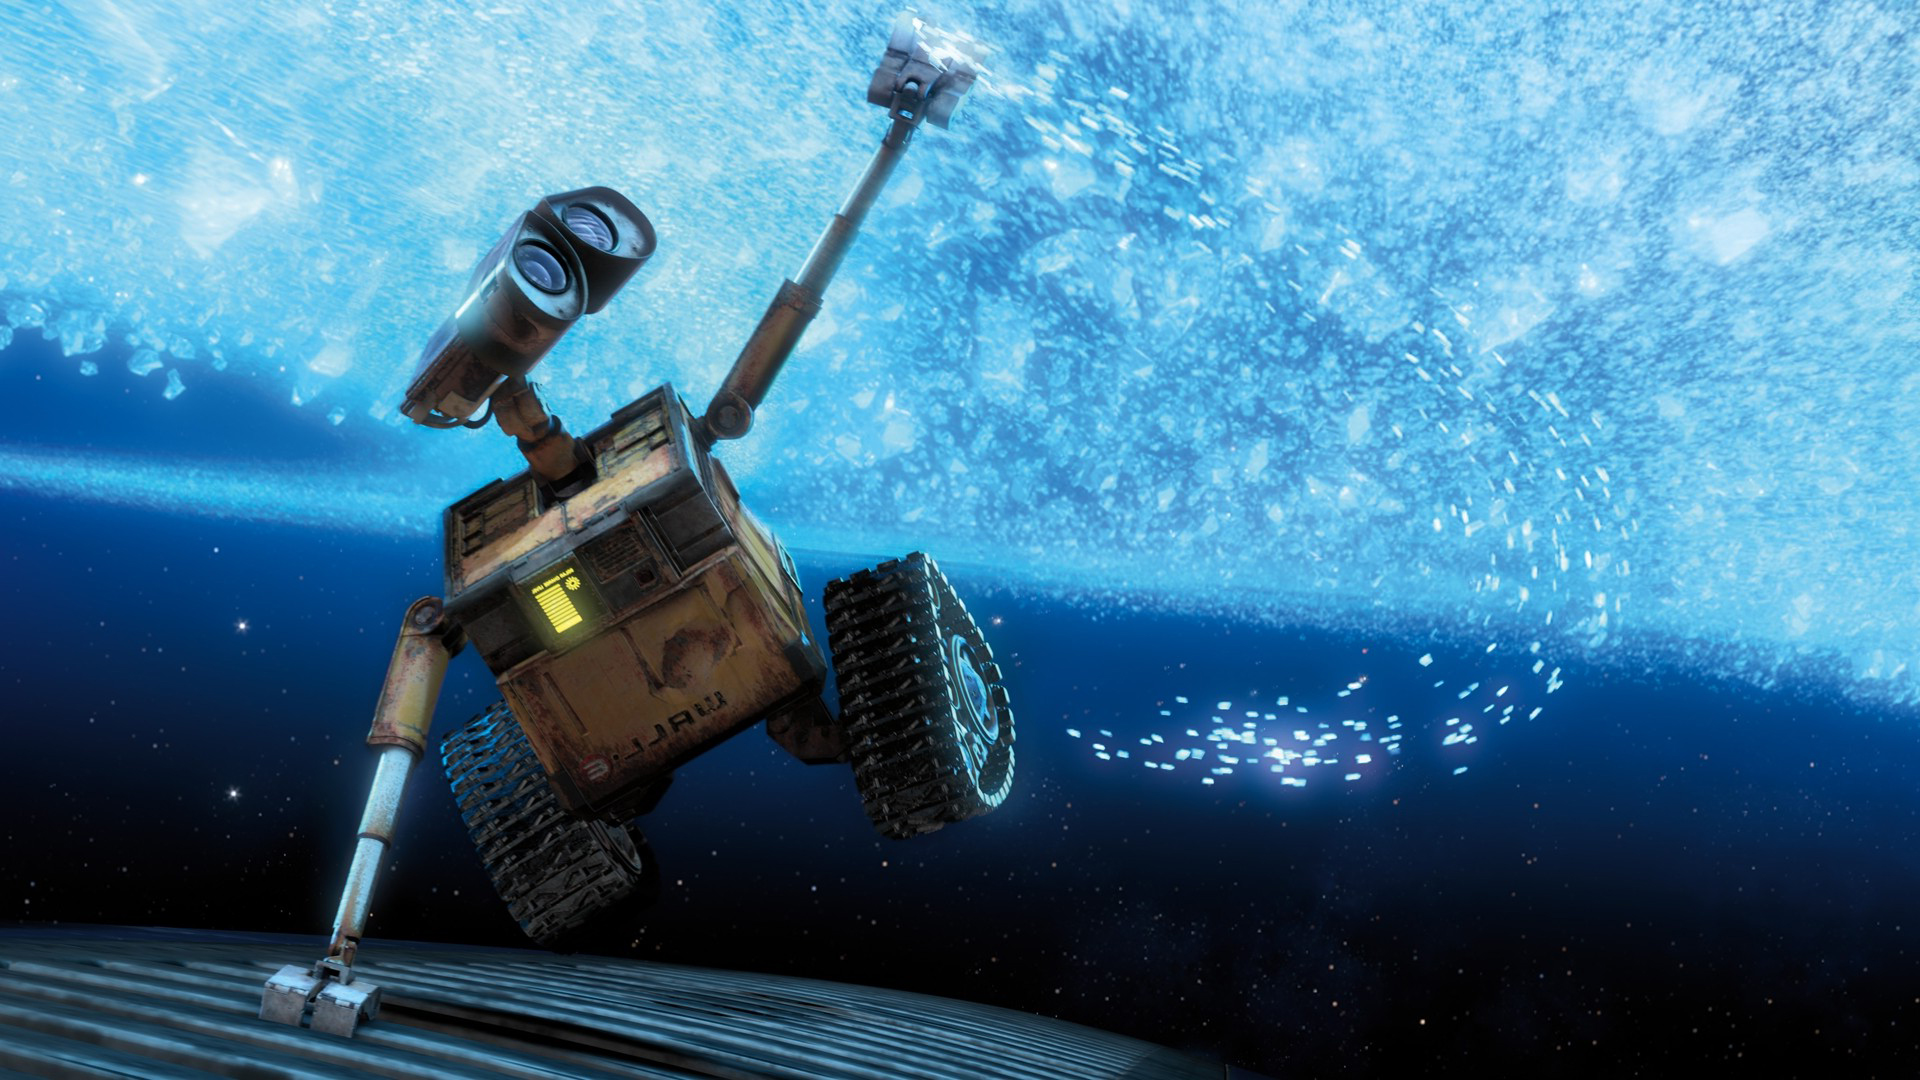 download wall e wallpaper gallery